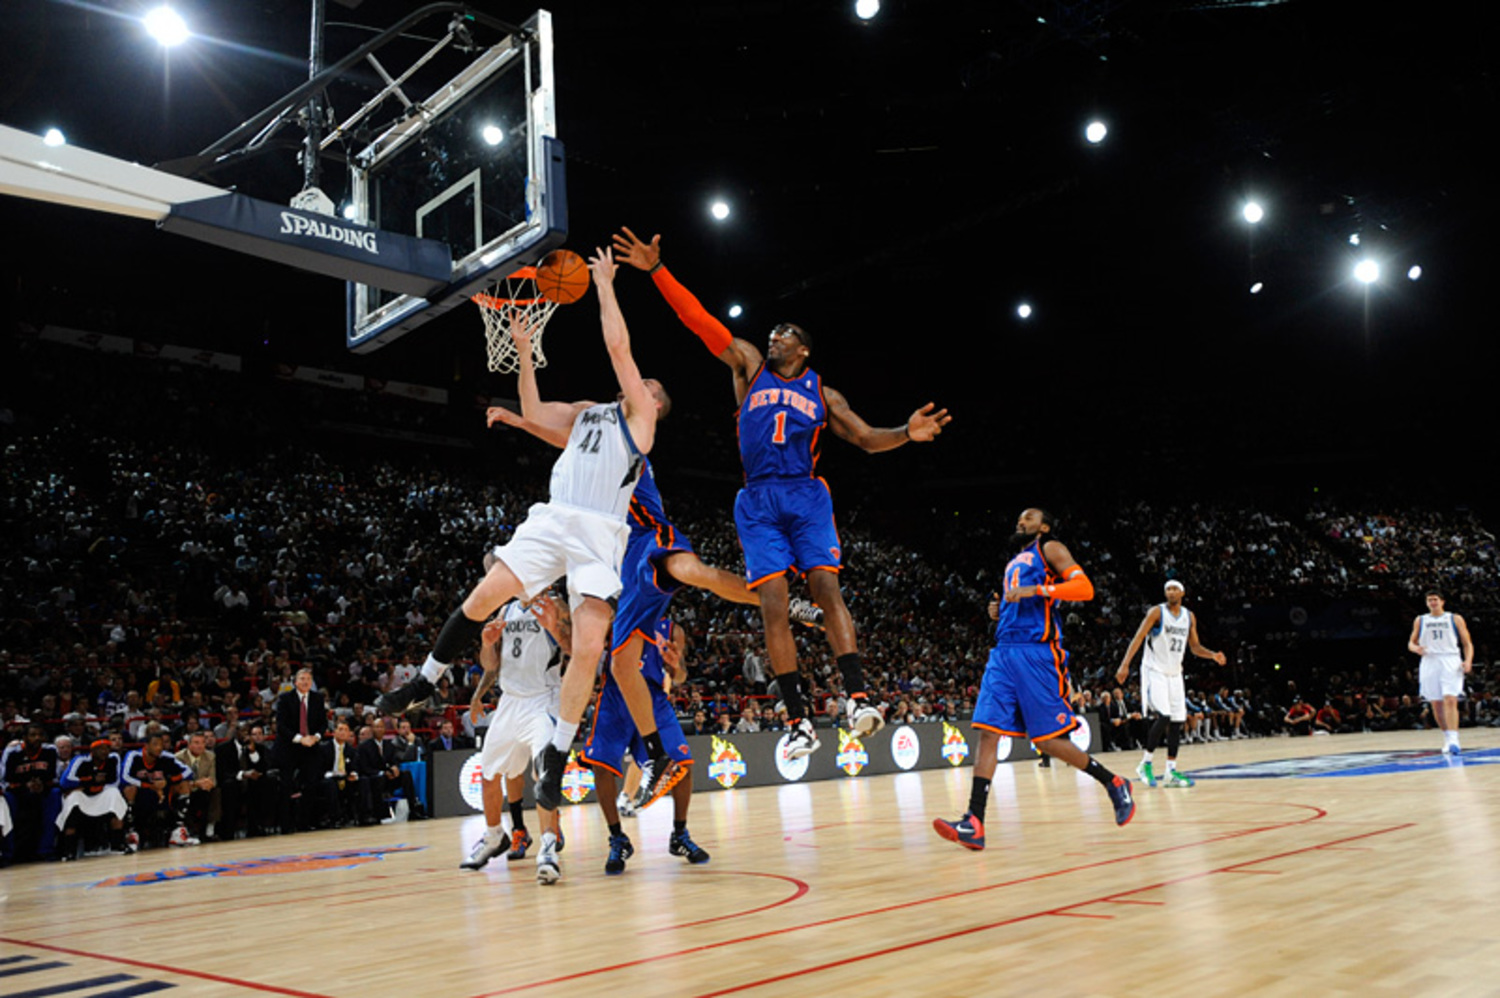 "New York Knicks v Minnesota Timberwolves | New York Knicks v Minnesota Timberwolves Amar'e Stoudemire and Kevin Love  Follow me at: <a href=""http://twitter.com/toksuede"" rel=""nofollow"">twitter.com/toksuede</a> Please check out my site: <a href=""http://www.ryusha.com"" rel=""nofollow"">Ryu Sha</a> If you want to learn more about how to shoot sports photography, please visit <a href=""http://www.biglensfastshutter.com"" rel=""nofollow"">Big Lens Fast Shutter</a>"